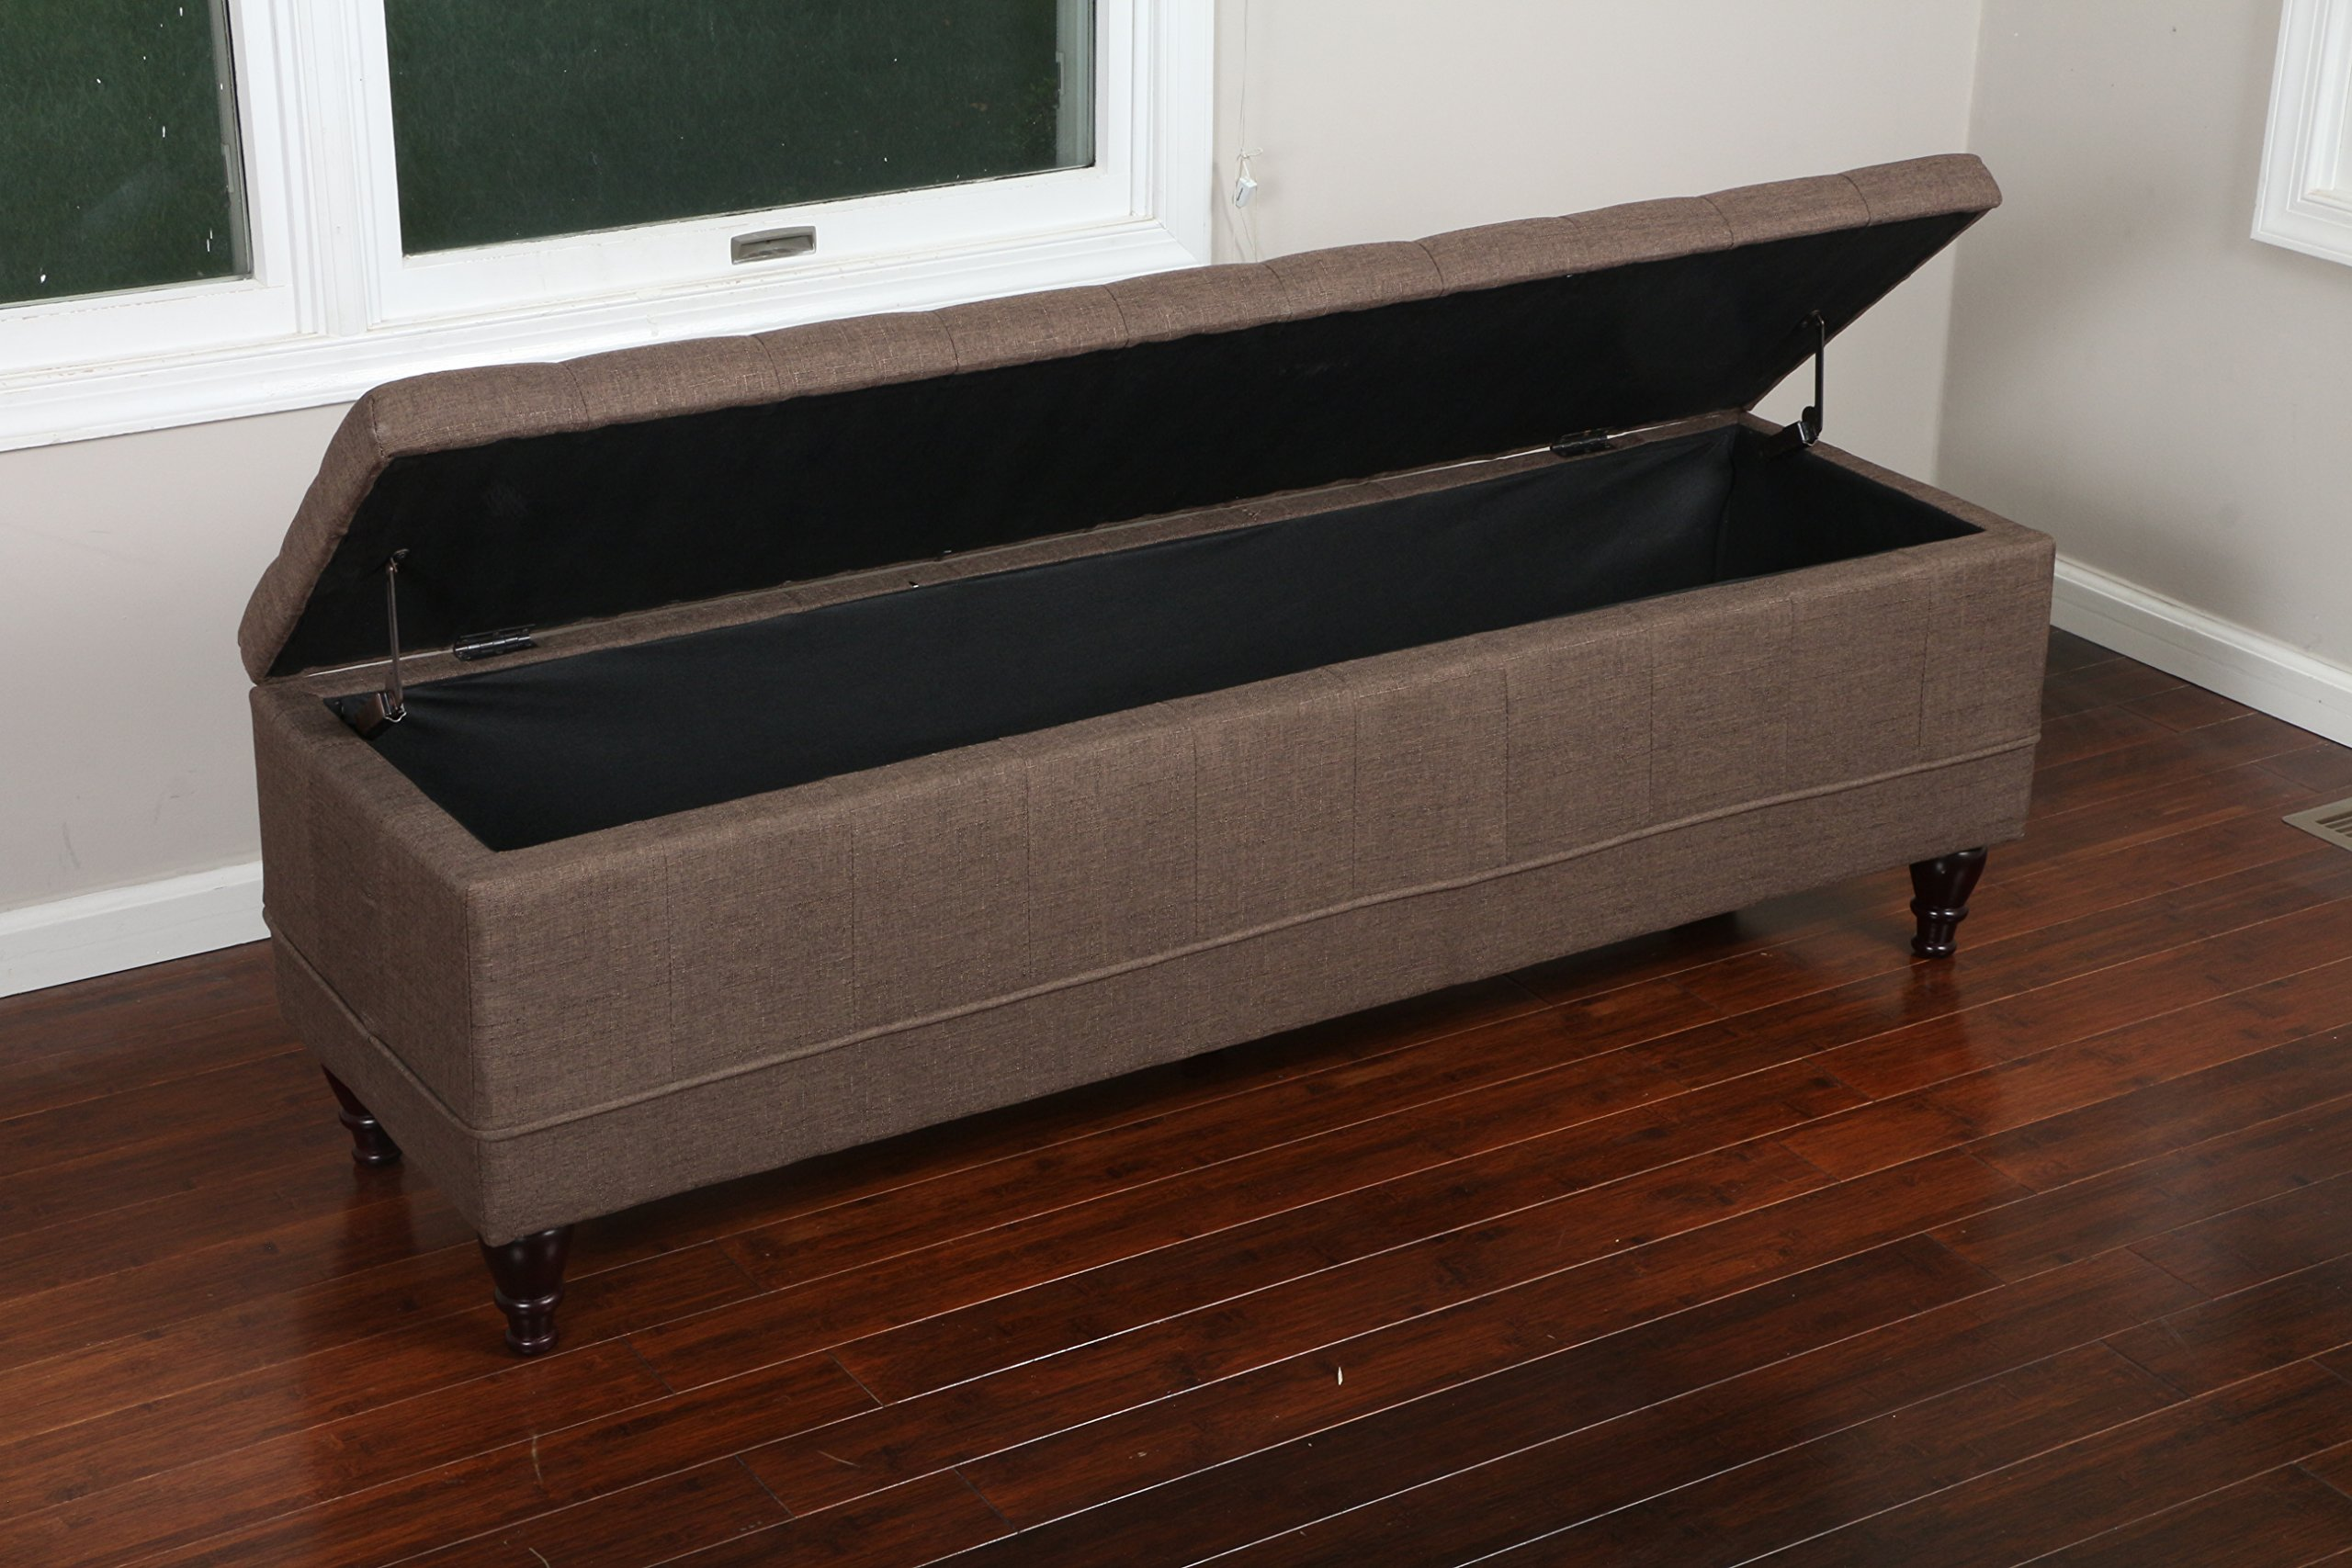 Home Life 59'' x 17'' Extra Long Front of Bed Storage Lift Top Bench Ottoman, Queen, Brown by LIFE Home (Image #2)